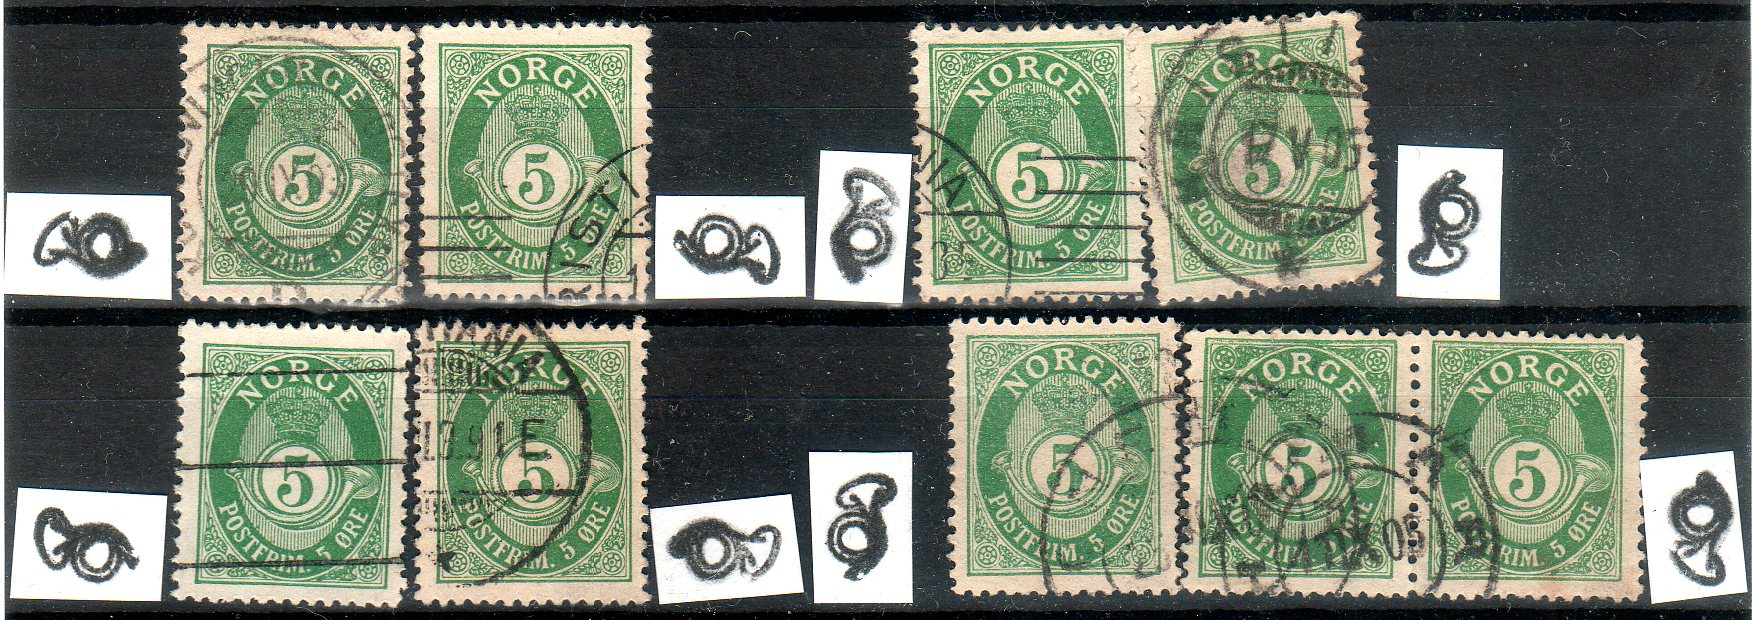 https://www.norstamps.com/content/images/stamps/171000/171551.jpg